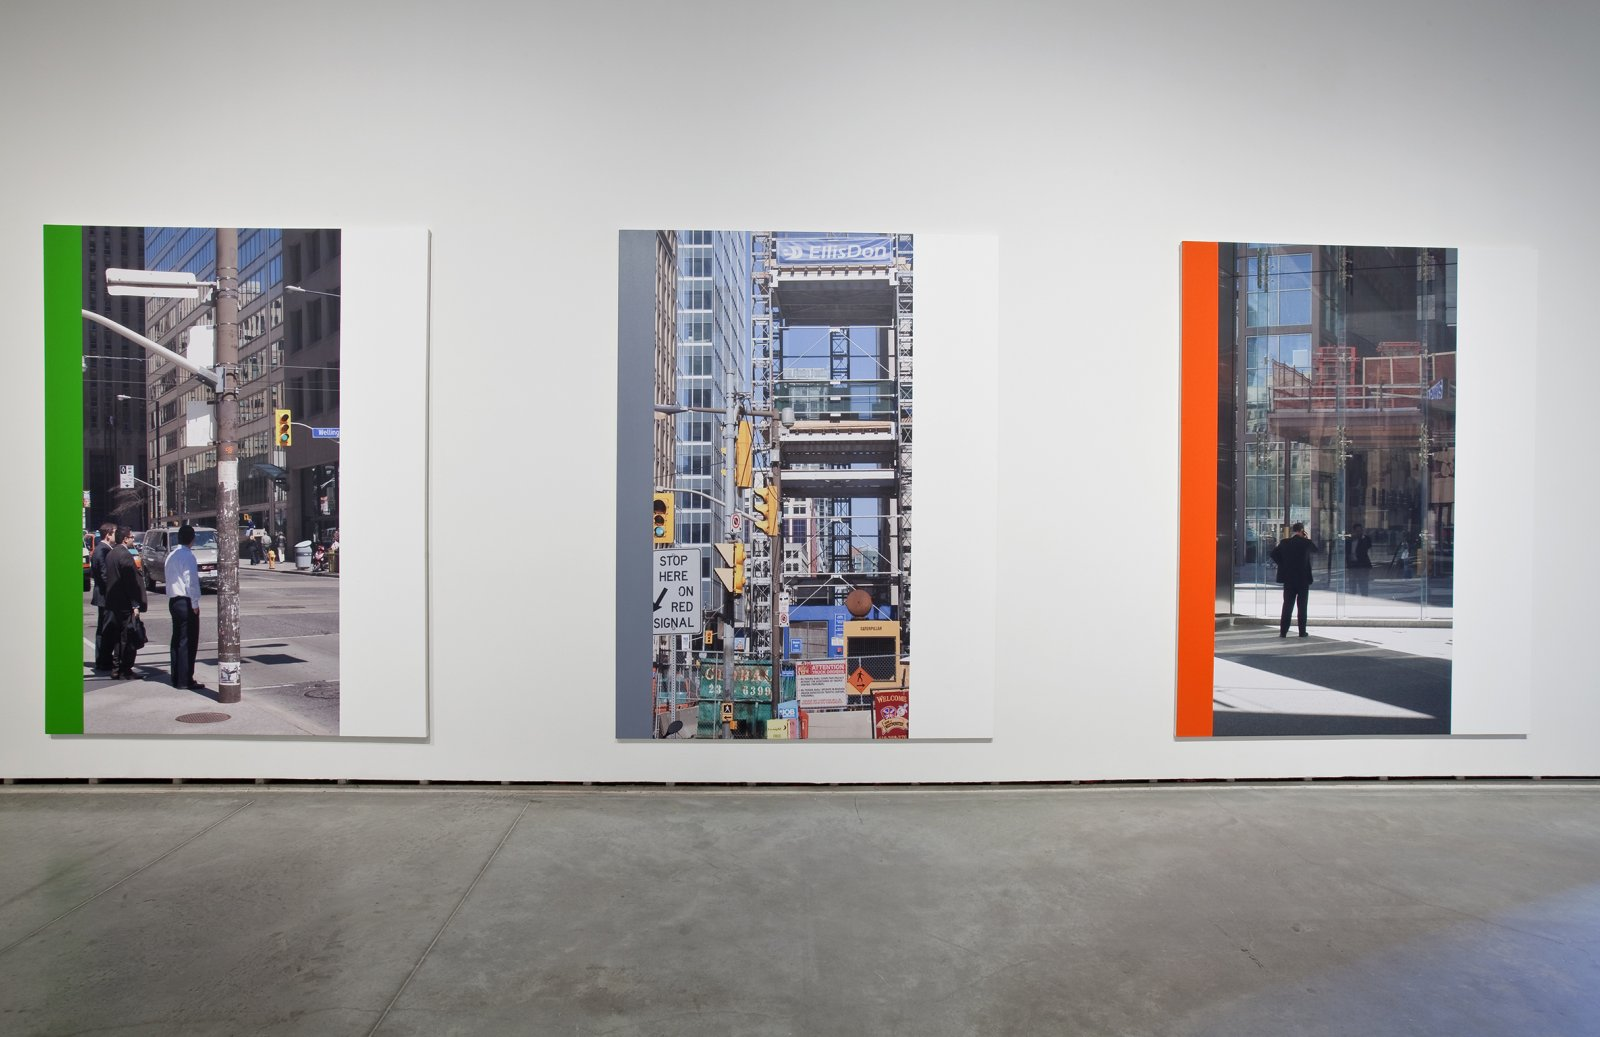 Ian Wallace, Abstract Paintings I–XII (The Financial District), 2010, 12 photolaminate with acrylic on canvas panels, each 96 x 72 in. (244 x 183 cm). Installation view, The Economy of the Image, The Power Plant, Toronto, 2010 by Ian Wallace